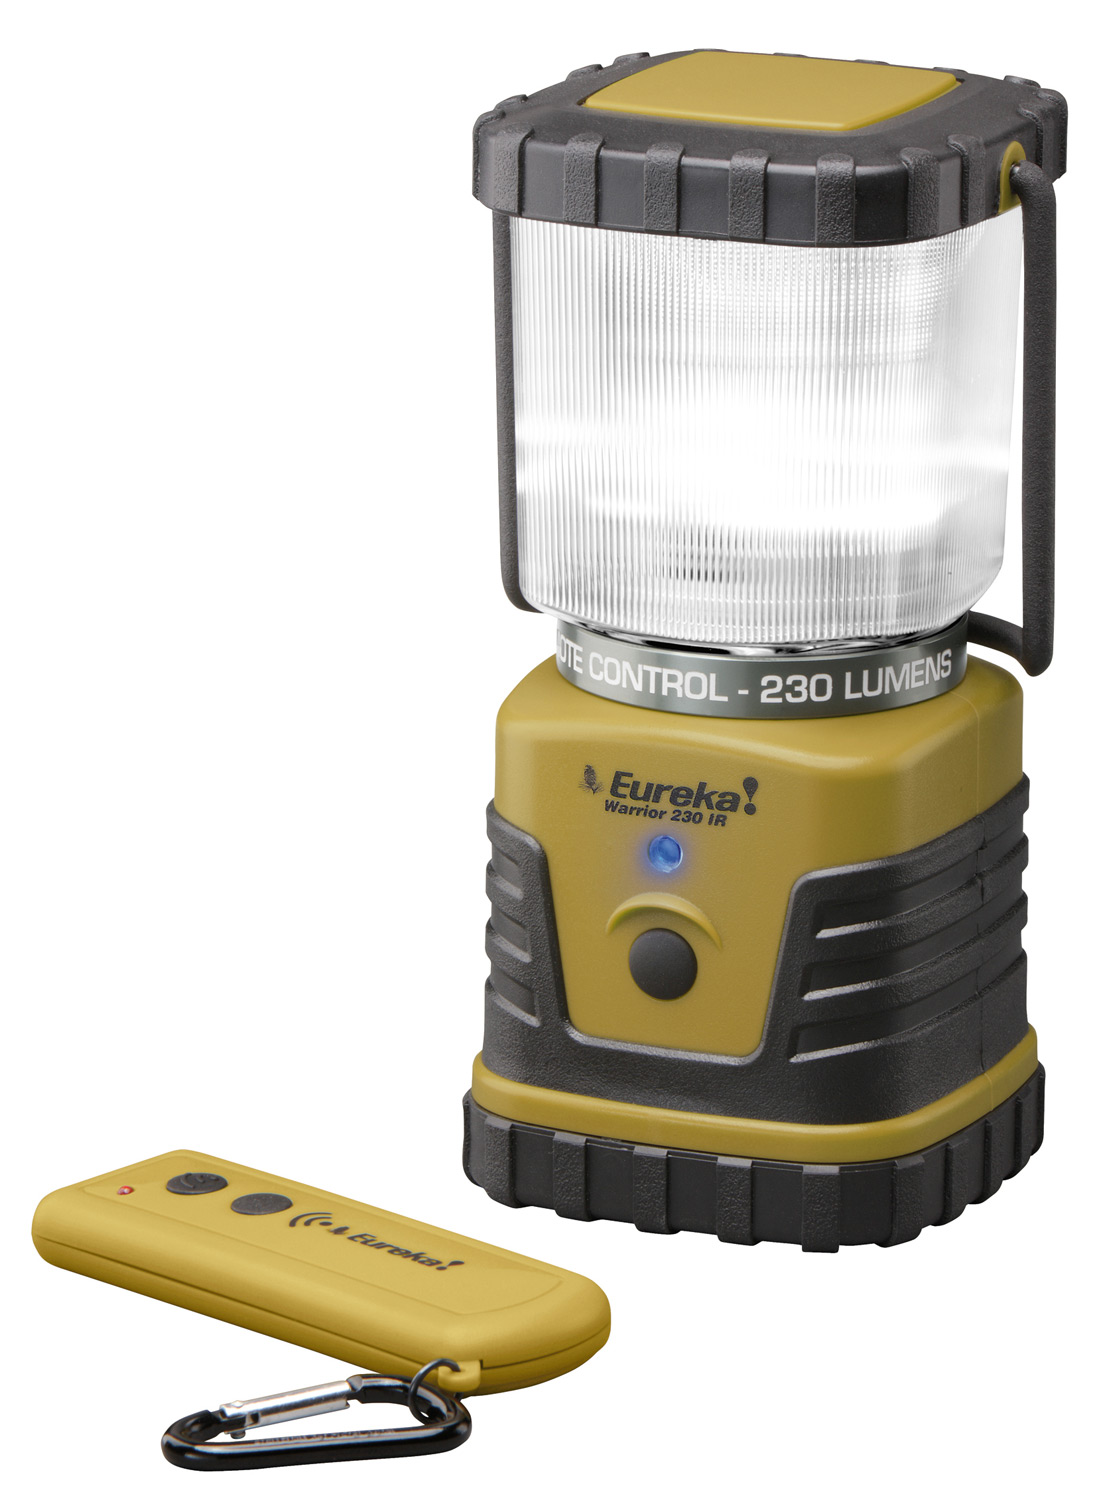 "Camp and Hike Lighting is an integral part of the nighttime campsite, and for 2012, Eureka! expands our collection of portable lighting with the introduction of the Warrior 230 lantern. Unique to this lantern is an infrared remote for easy operation of the lantern, especially if it is hanging in a tent or on a pole. Adding further value, the remote performs double-duty as a small LED ? ashlight. The compact Warrior 230 runs on 3 D-size batteries, producing 230 lumens for 50 hours when on high. This is enough run time for a several day trip without having the be concerned about battery life.Key Features of the Eureka Warrior 230 w/ Remote Control Lantern/Flashlight: Bright, compact, long running versatile lantern for camping and general outdoor use Manual or remote control operation 100% - 10% dimming control SOS ? ash mode Infrared remote control makes operation easy and also functions as a ? ashlight Durable housing for years of performance Built-in recessed hook on lantern base for hanging Water resistant 3 x 1.5V D size alkaline batteries (not included) 2 AAA Duracell batteries included for remote Lumen Output 230/15 LED type Nichia Run Time (high/low/? ash) 50/200/200 hours Battery type 3 D Dimensions 3.4"" x 3.4"" x 7.3"" Weight with batteries 30.26 oz. Remote Control Yes Regulated Circuit Yes IPX Rating 4 ANSI/NEMA FL 1-2009 Compliant - $59.95"